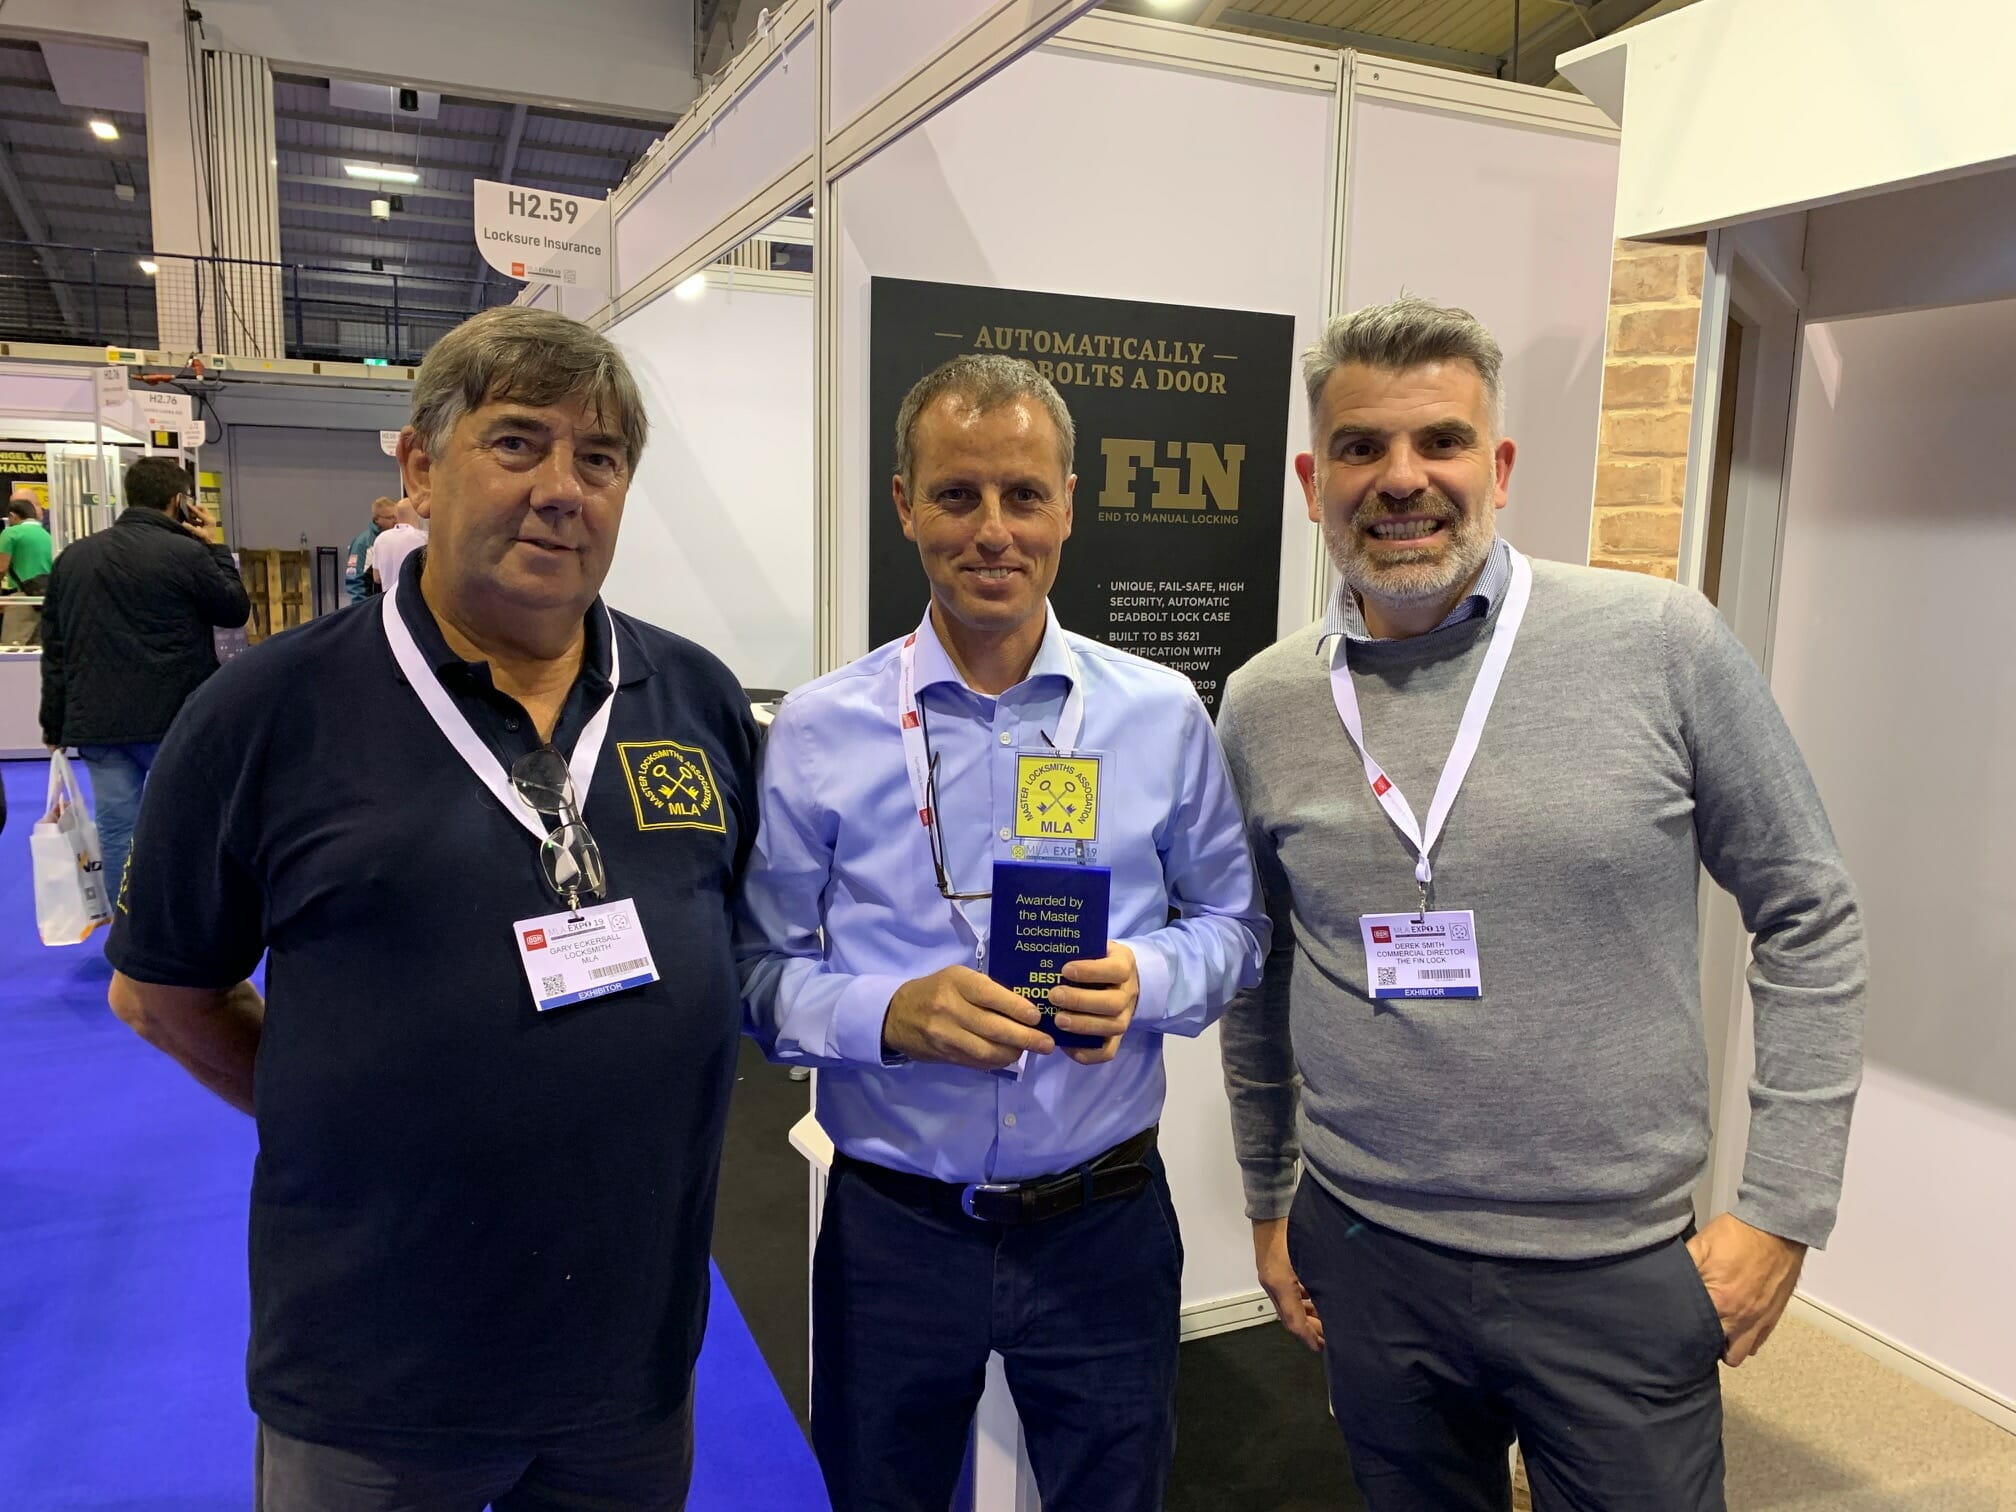 The Fin Lock - best product at MLA Expo 2019